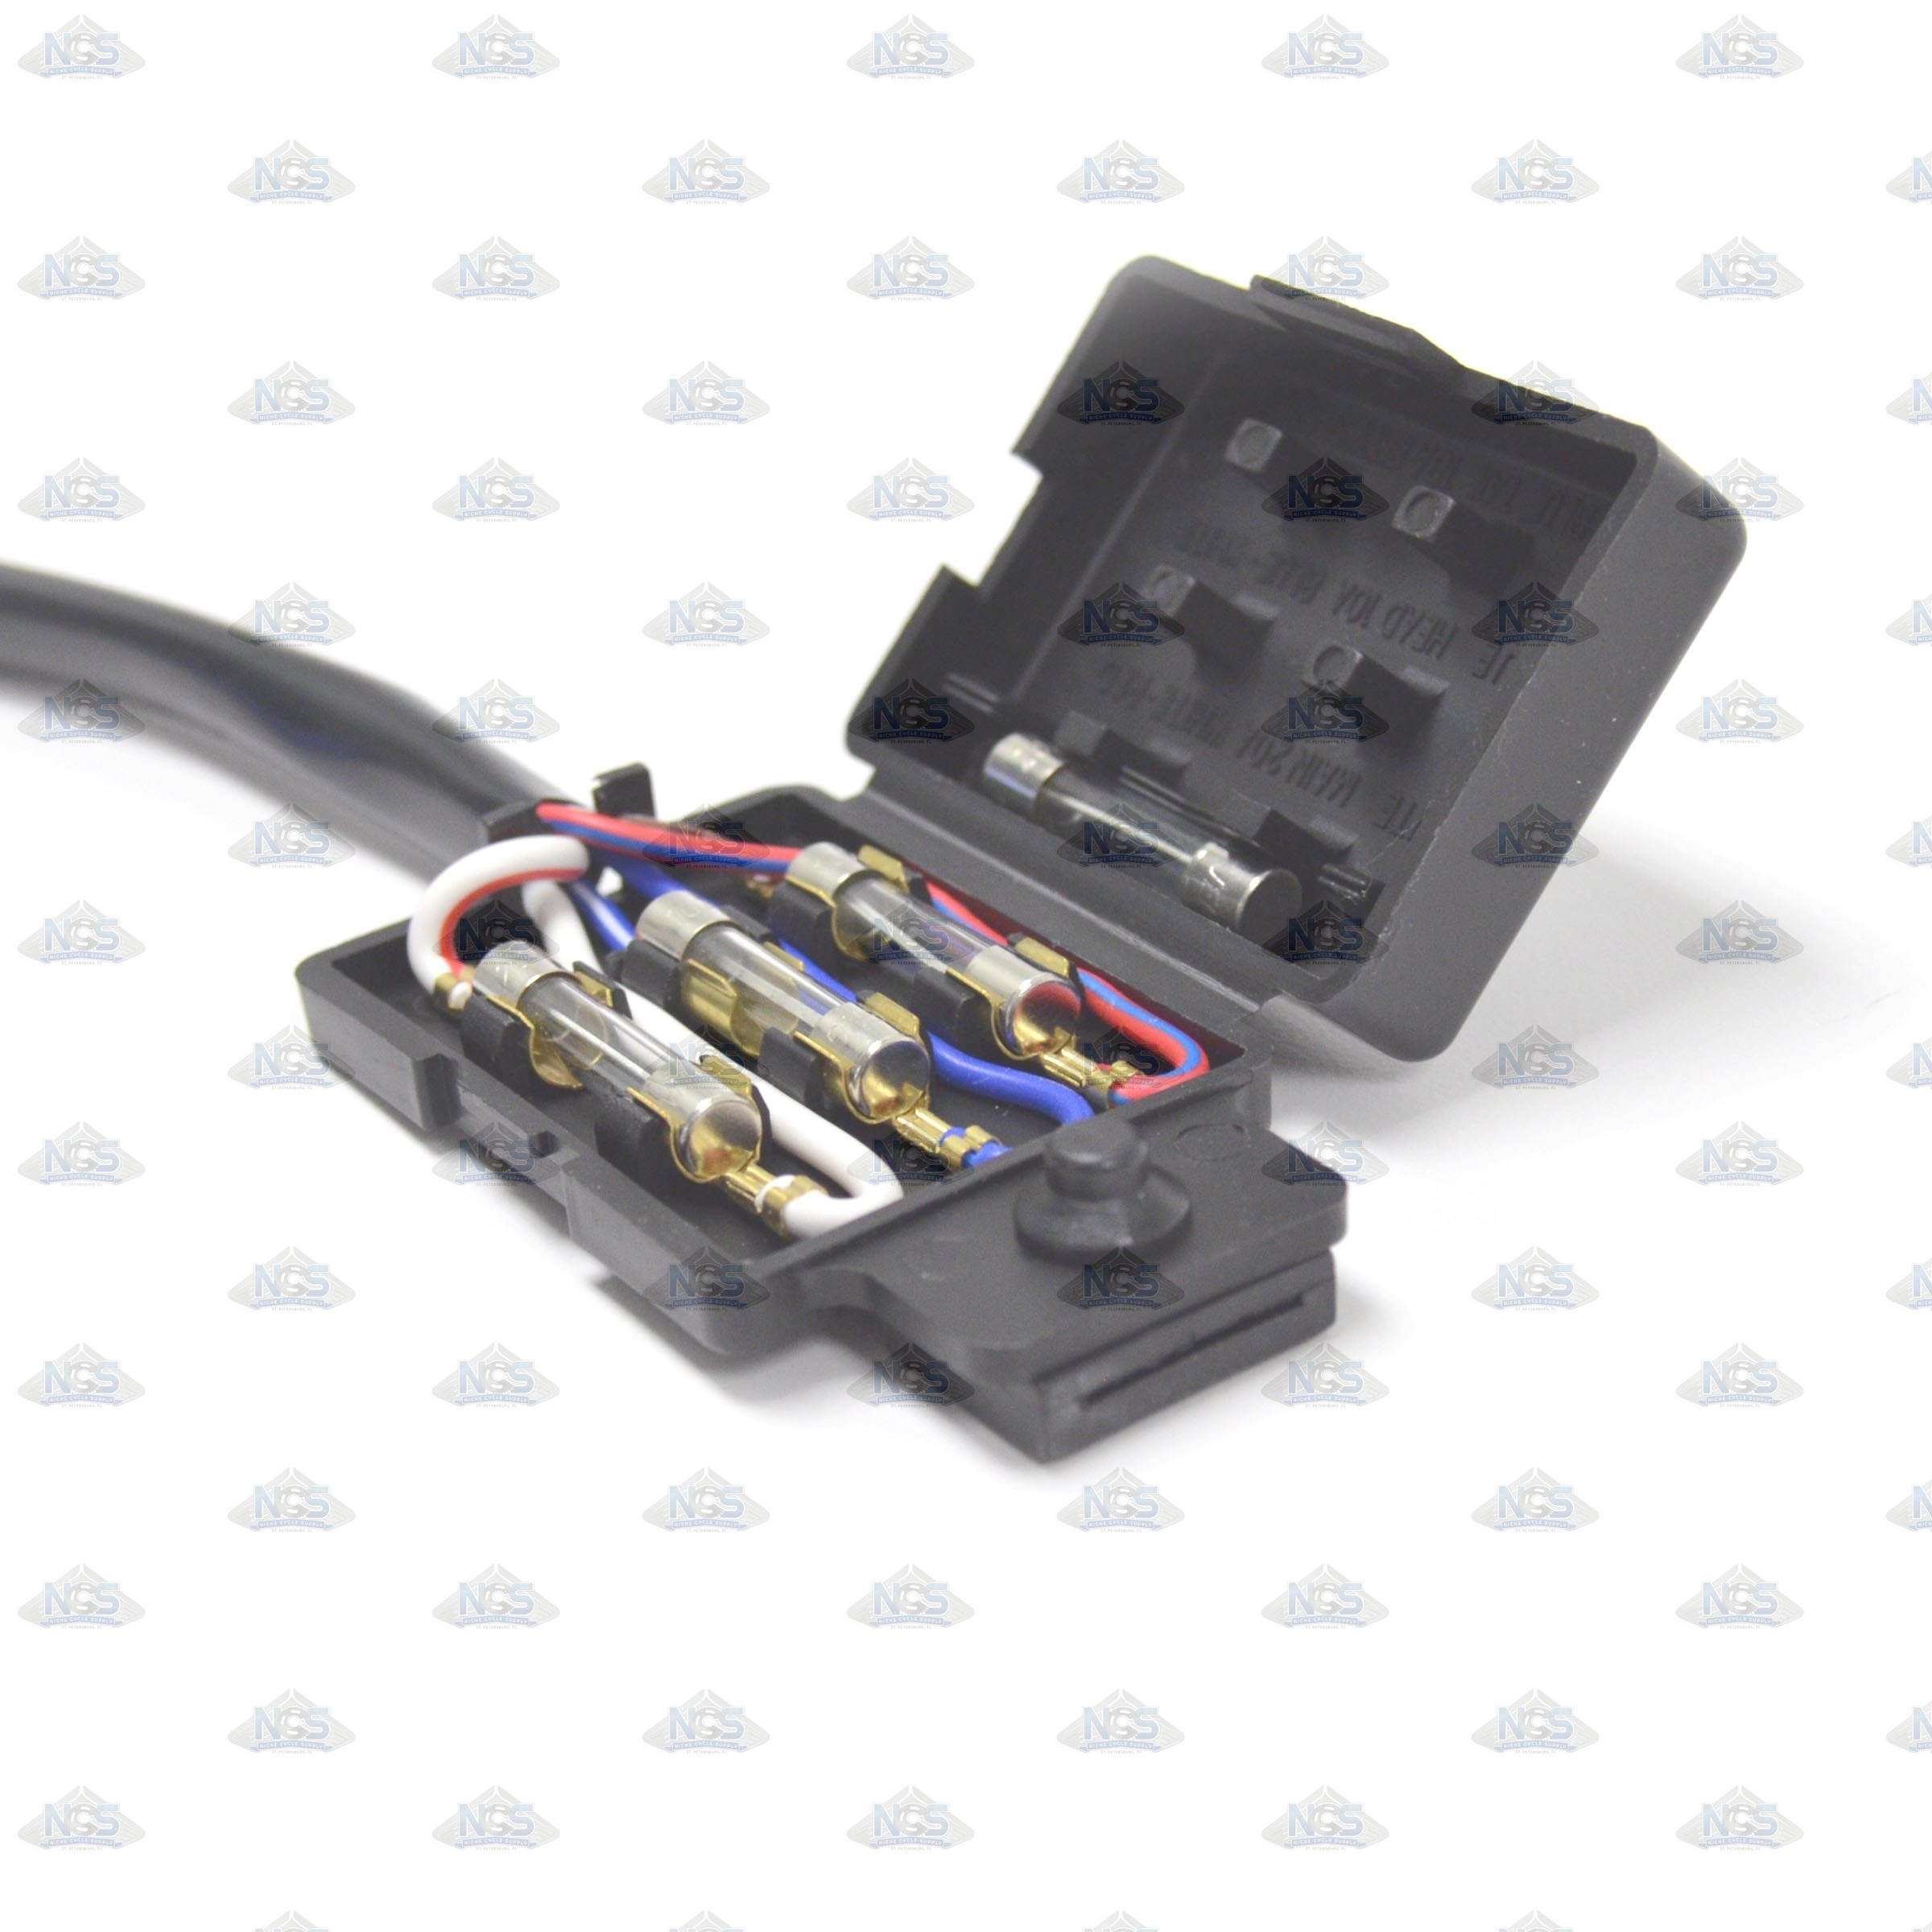 wiring harness available instock at niche cycle supply on 1974 Mach 1 1972 Mach 1 for kawasaki fuse box large plug 26004 1002